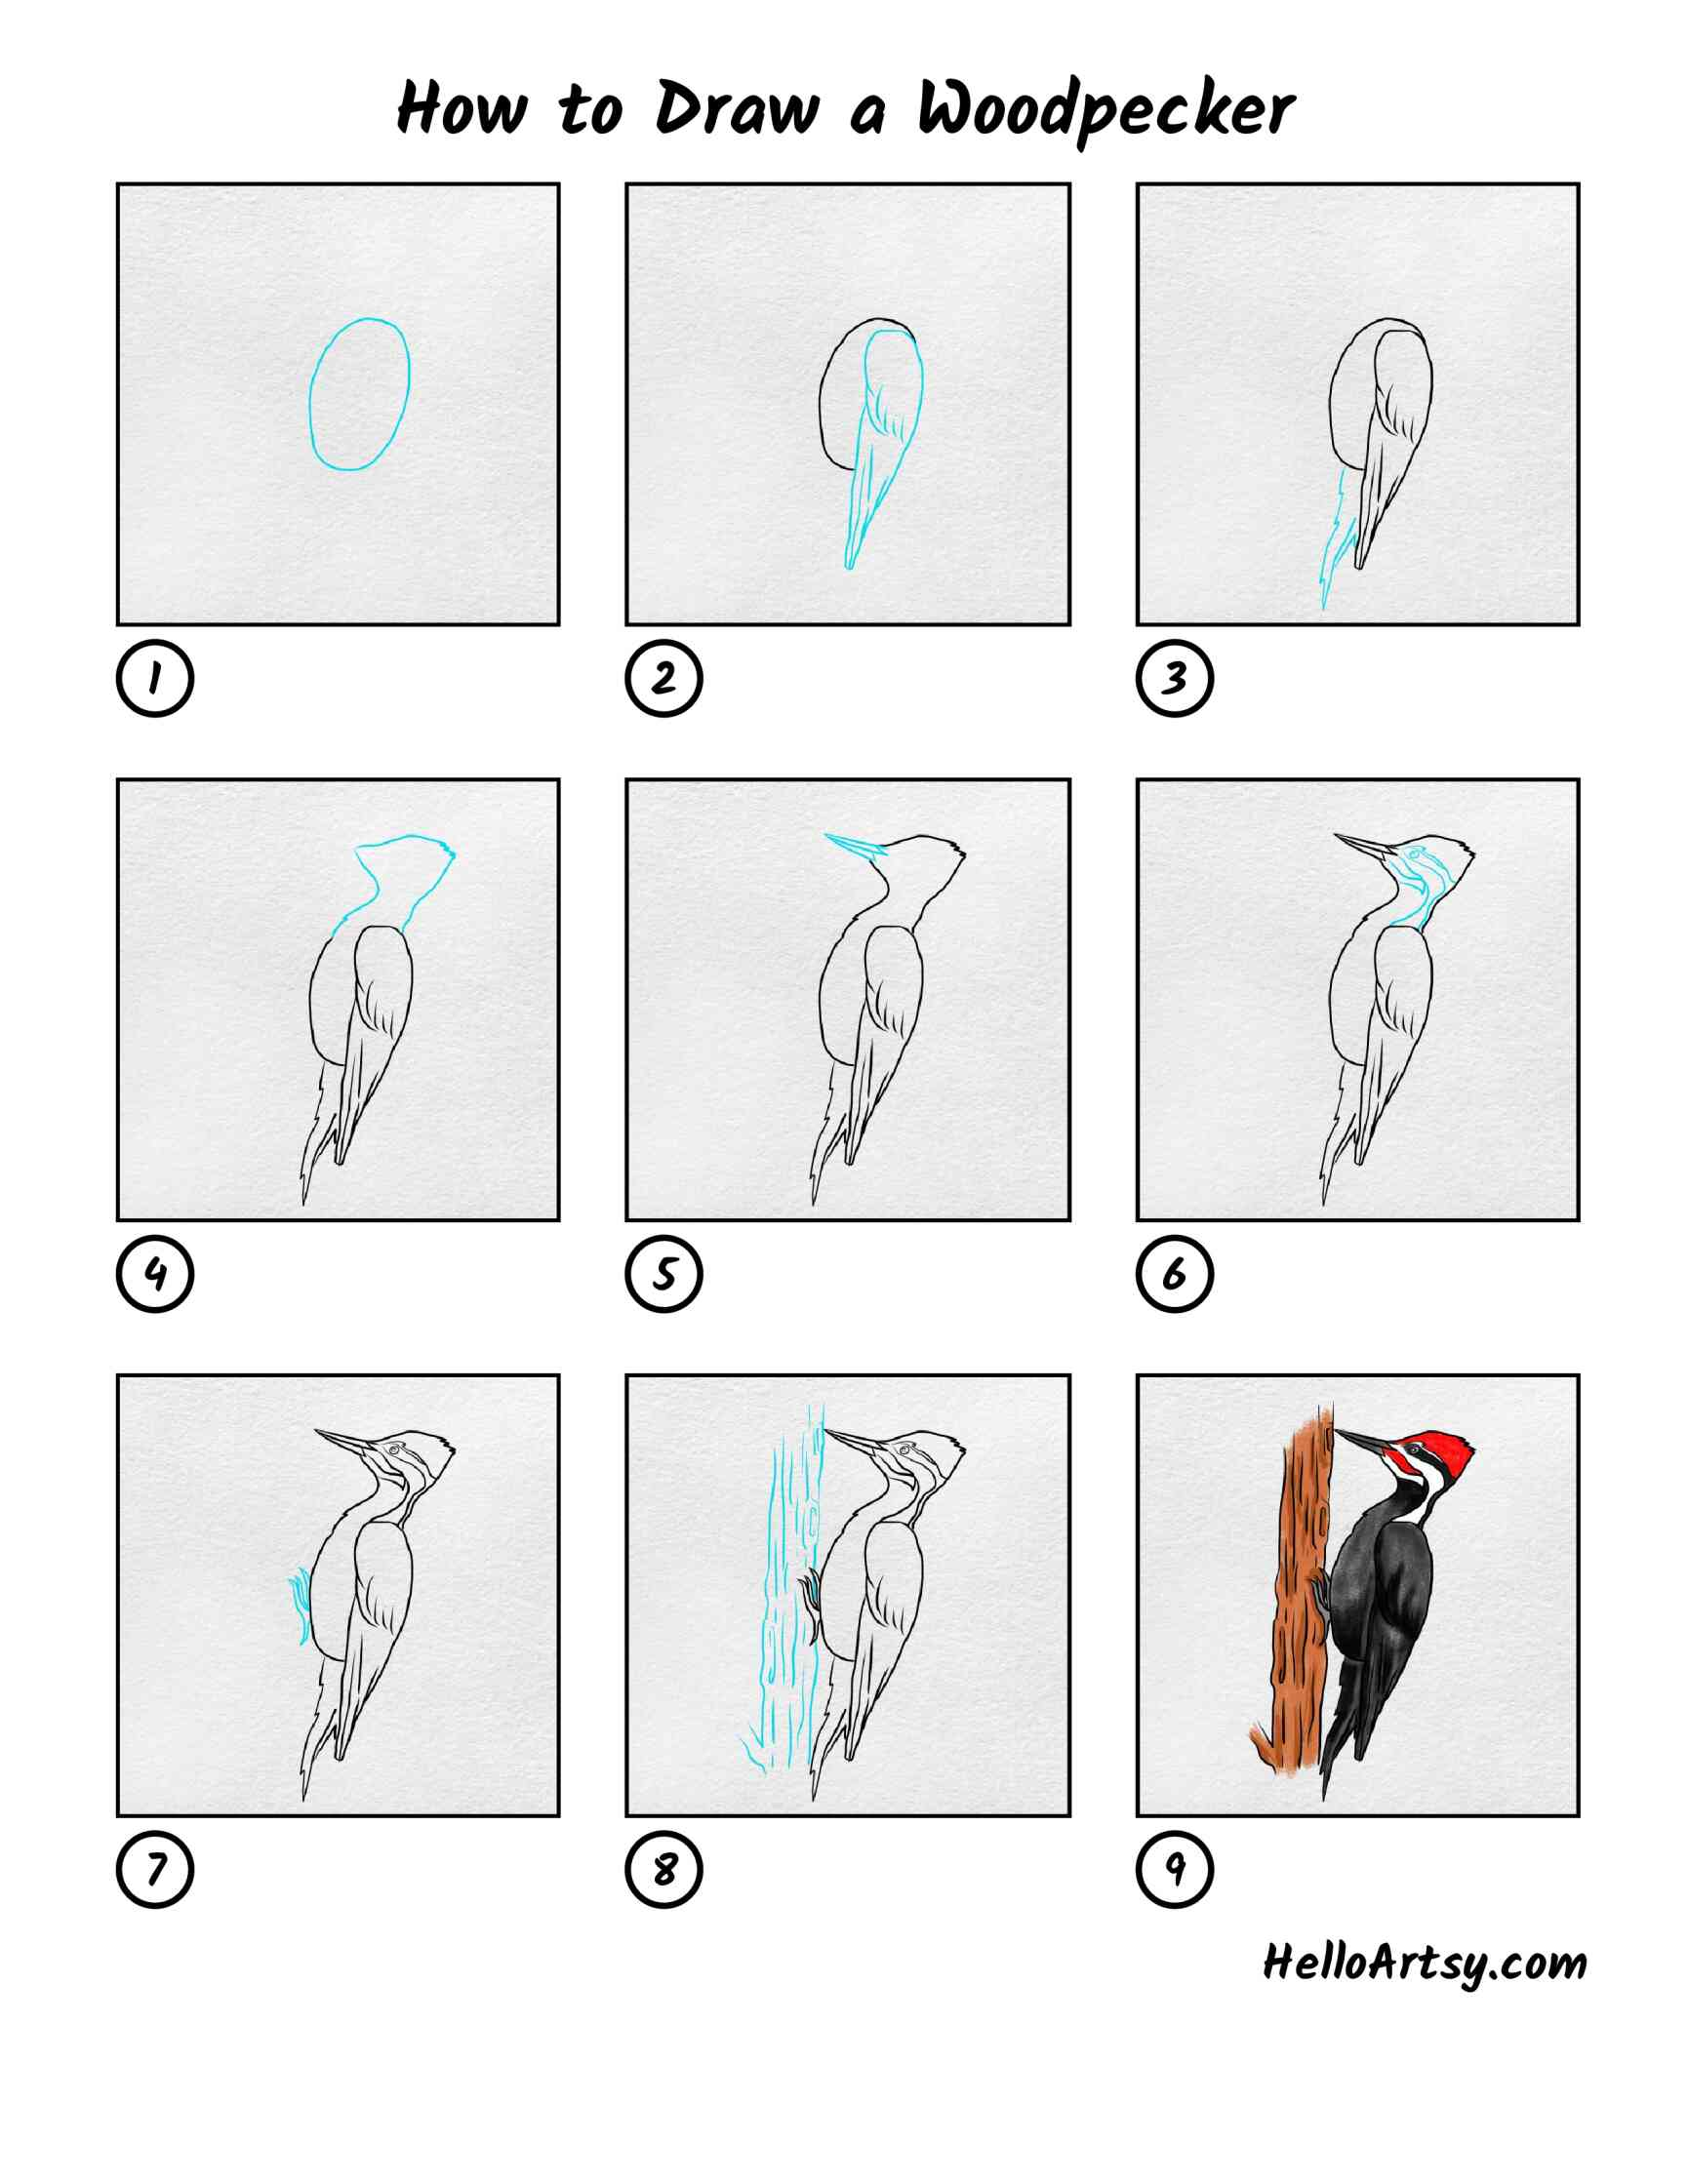 How To Draw A Woodpecker: All Steps